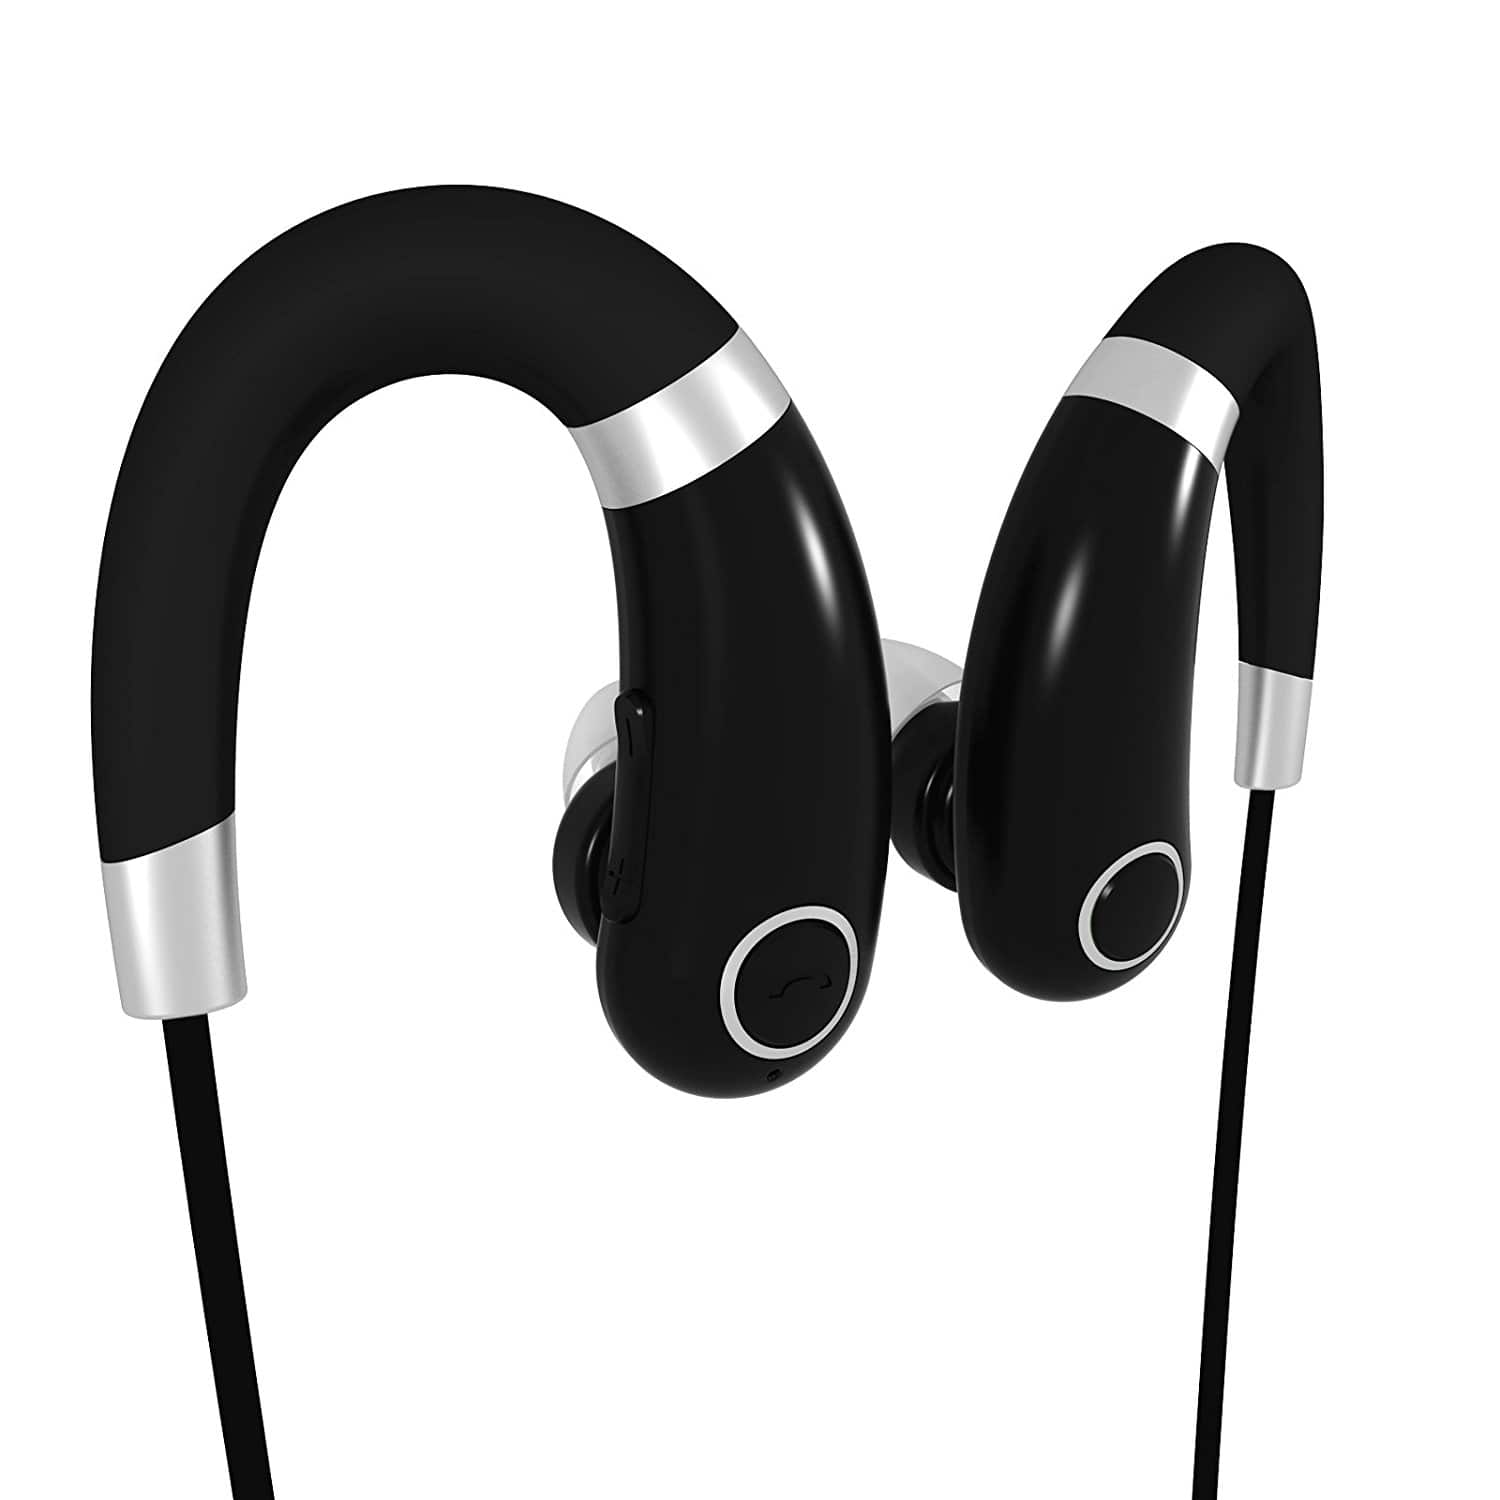 Bluetooth Headphones Headset Wireless Sweatproof Earbuds Stereo Sports for $10.73 @ Amazon